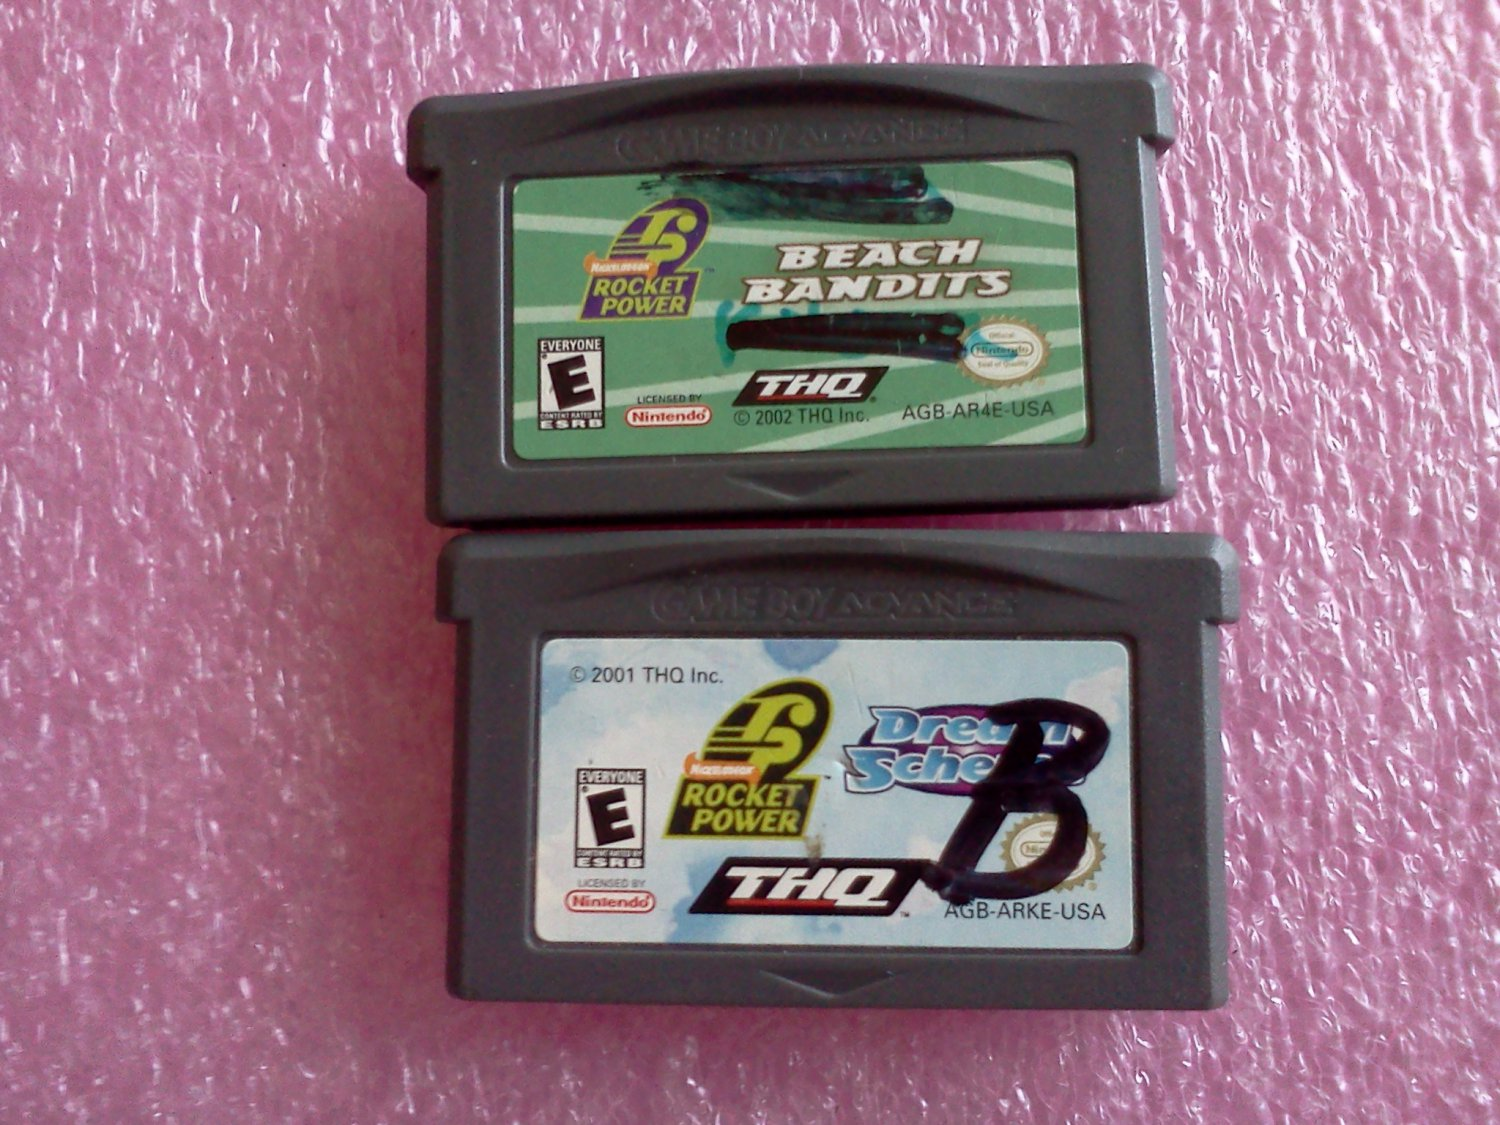 Rocket Power: Dream Scheme & Rocket Power: Beach Bandits (Nintendo Game Boy Advance, 2002)